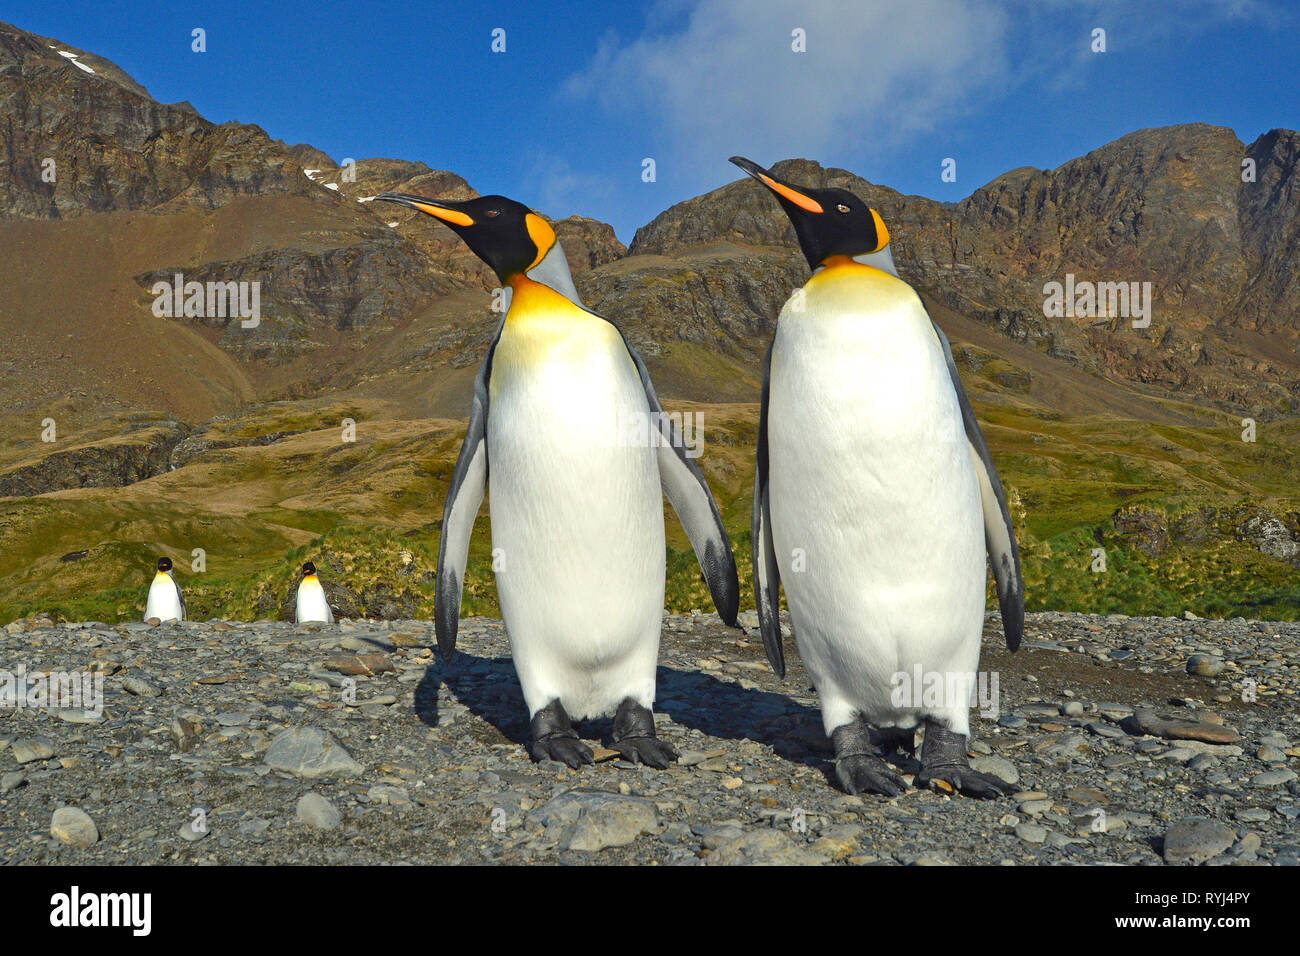 King penguin (Aptenodytes patagonicus), two adults on Carcass Island, Falkland Islands, South Atlantic Ocean - Stock Image